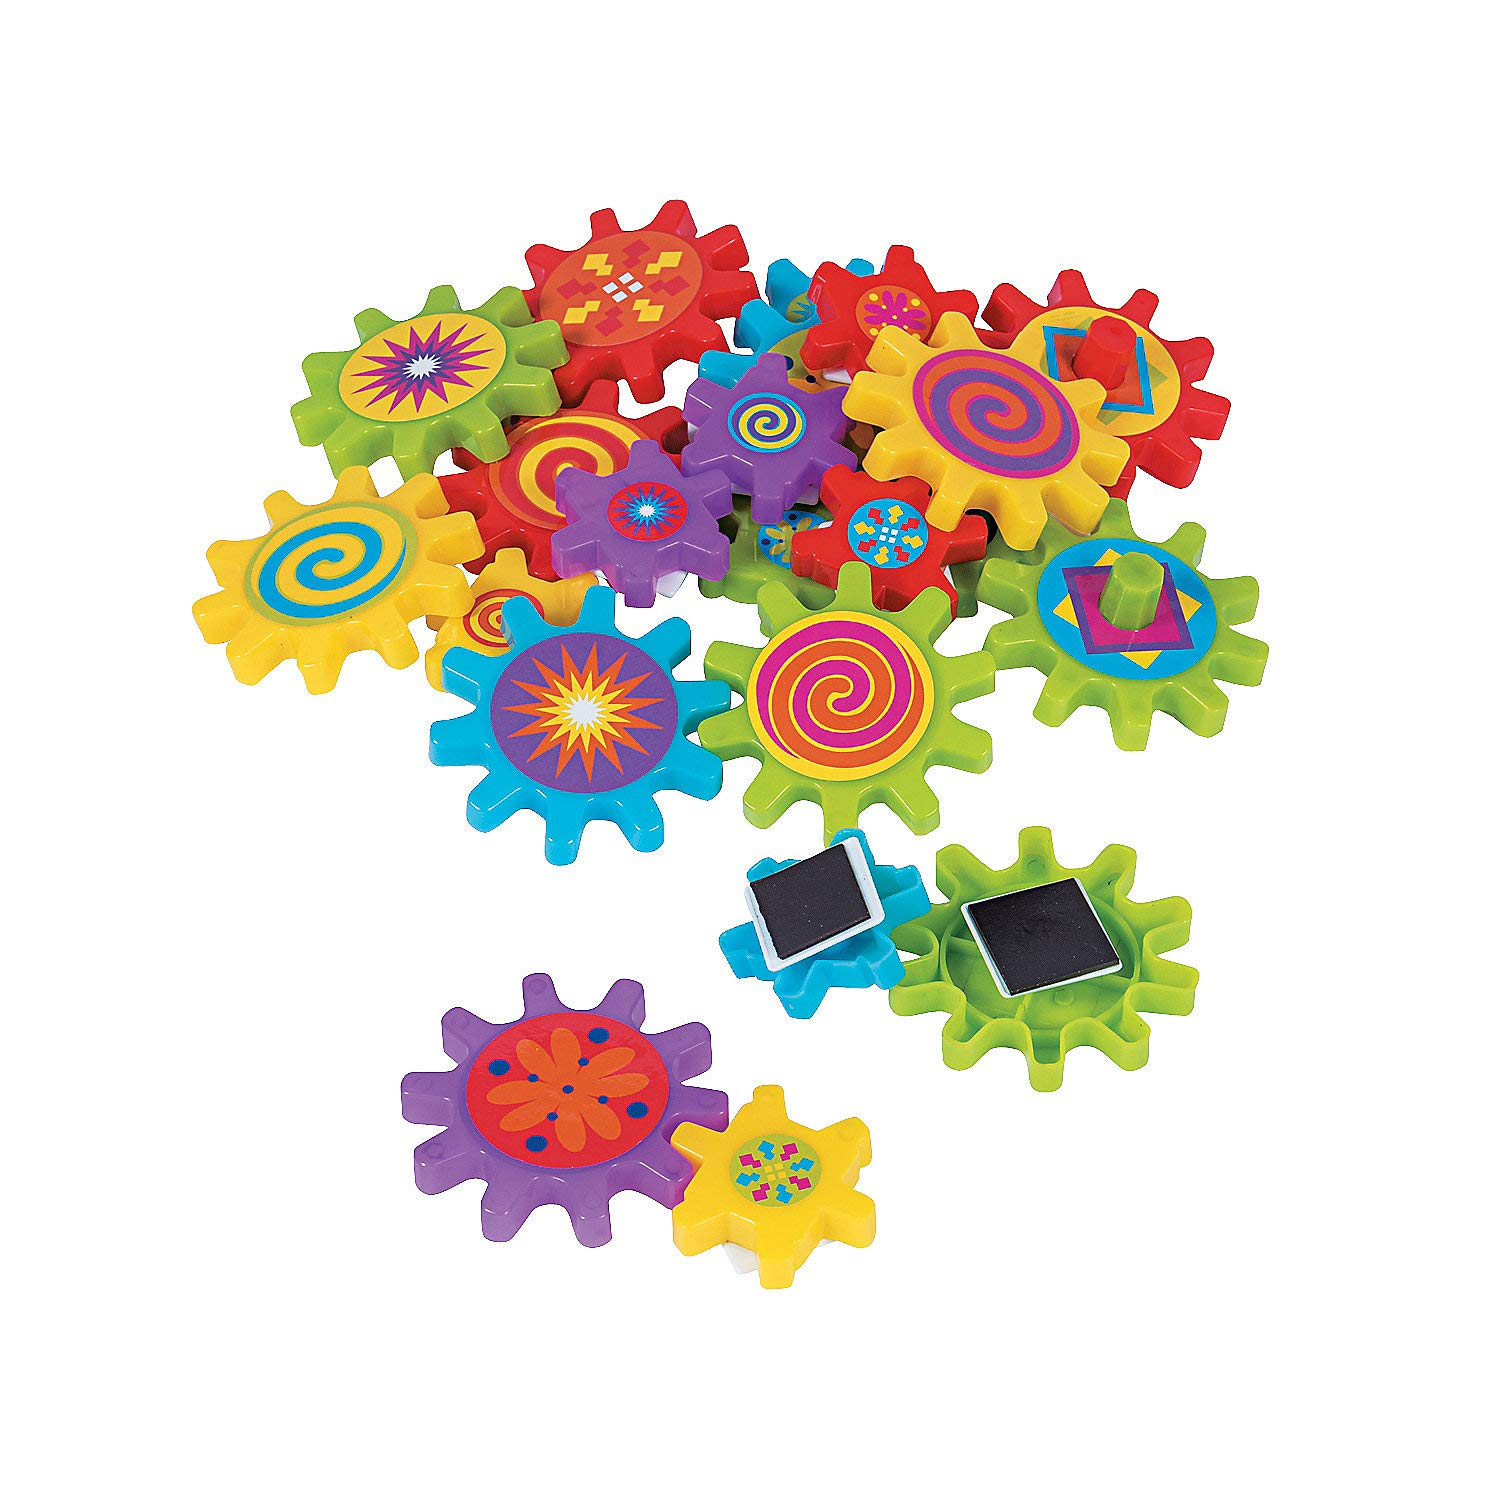 Fun Express - Magnetic Spinning Gears - Toys - Active Play - Blocks & Construction - 22 Pieces by Fun Express